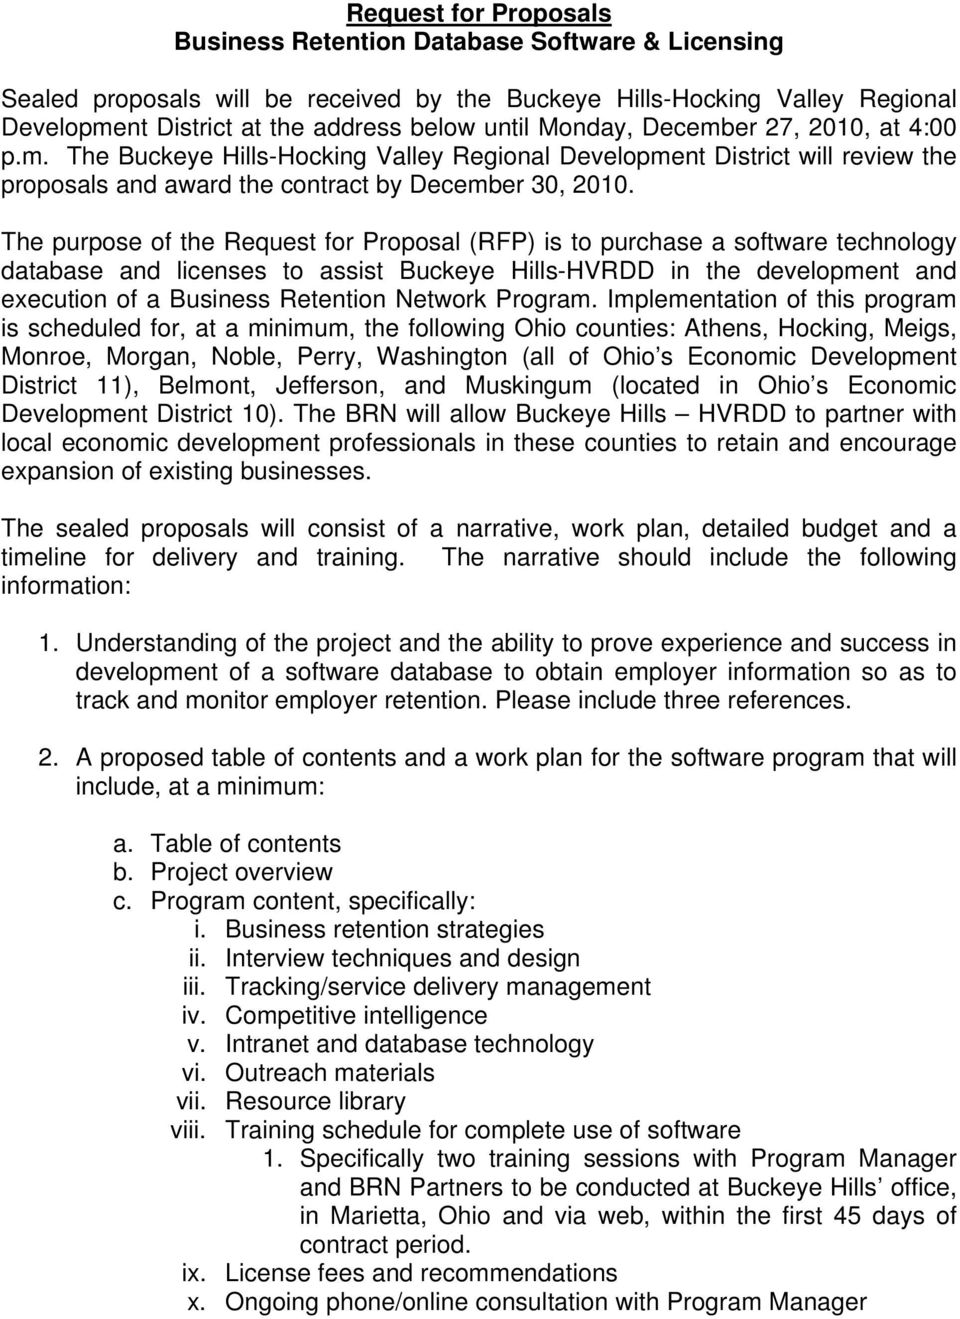 The purpose of the Request for Proposal (RFP) is to purchase a software technology database and licenses to assist Buckeye Hills-HVRDD in the development and execution of a Business Retention Network